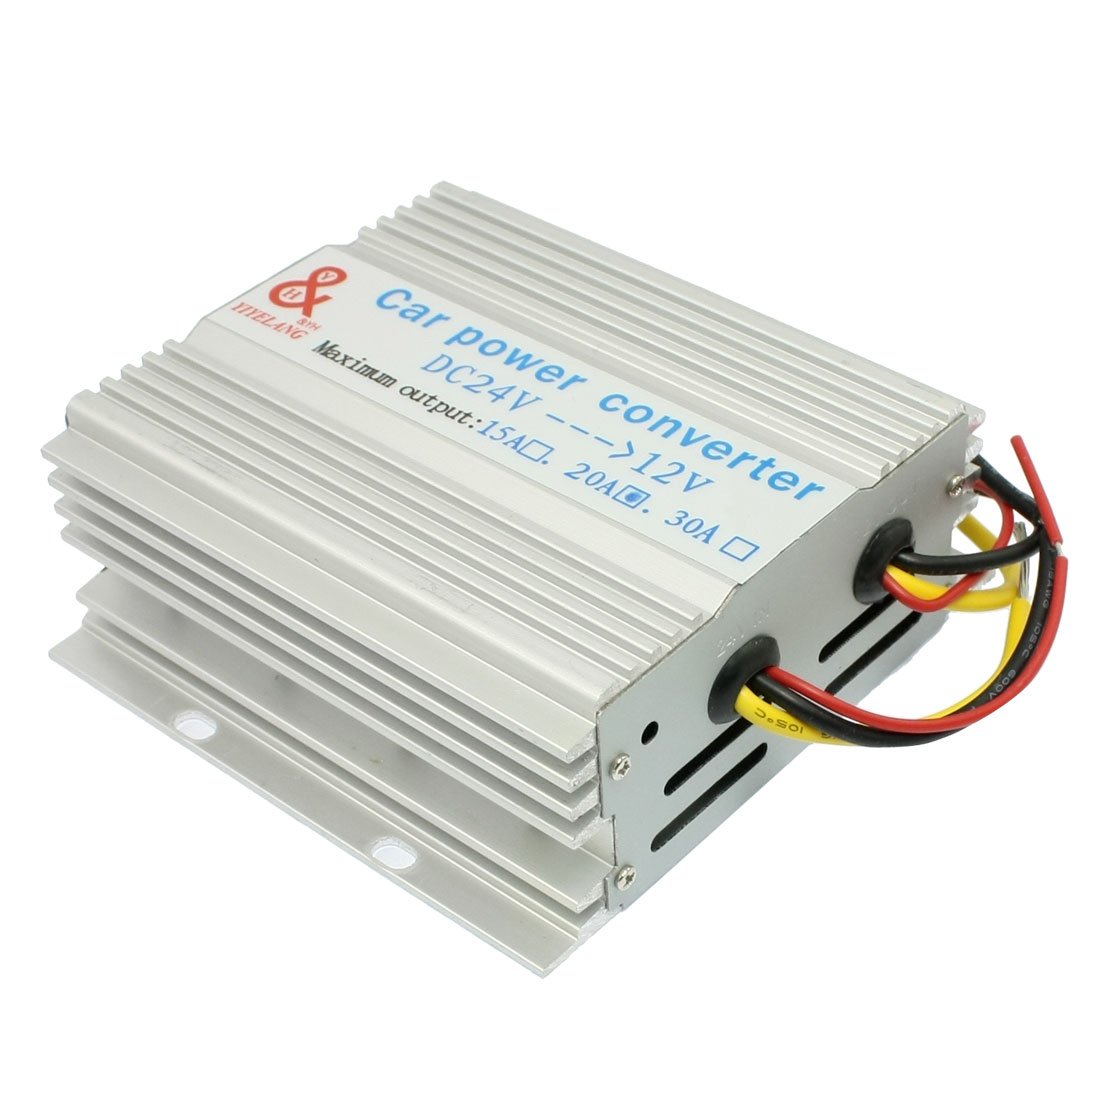 DC/DC 24V to 12V 20A 240W Car Vehicle Power Supply Converter Adapter